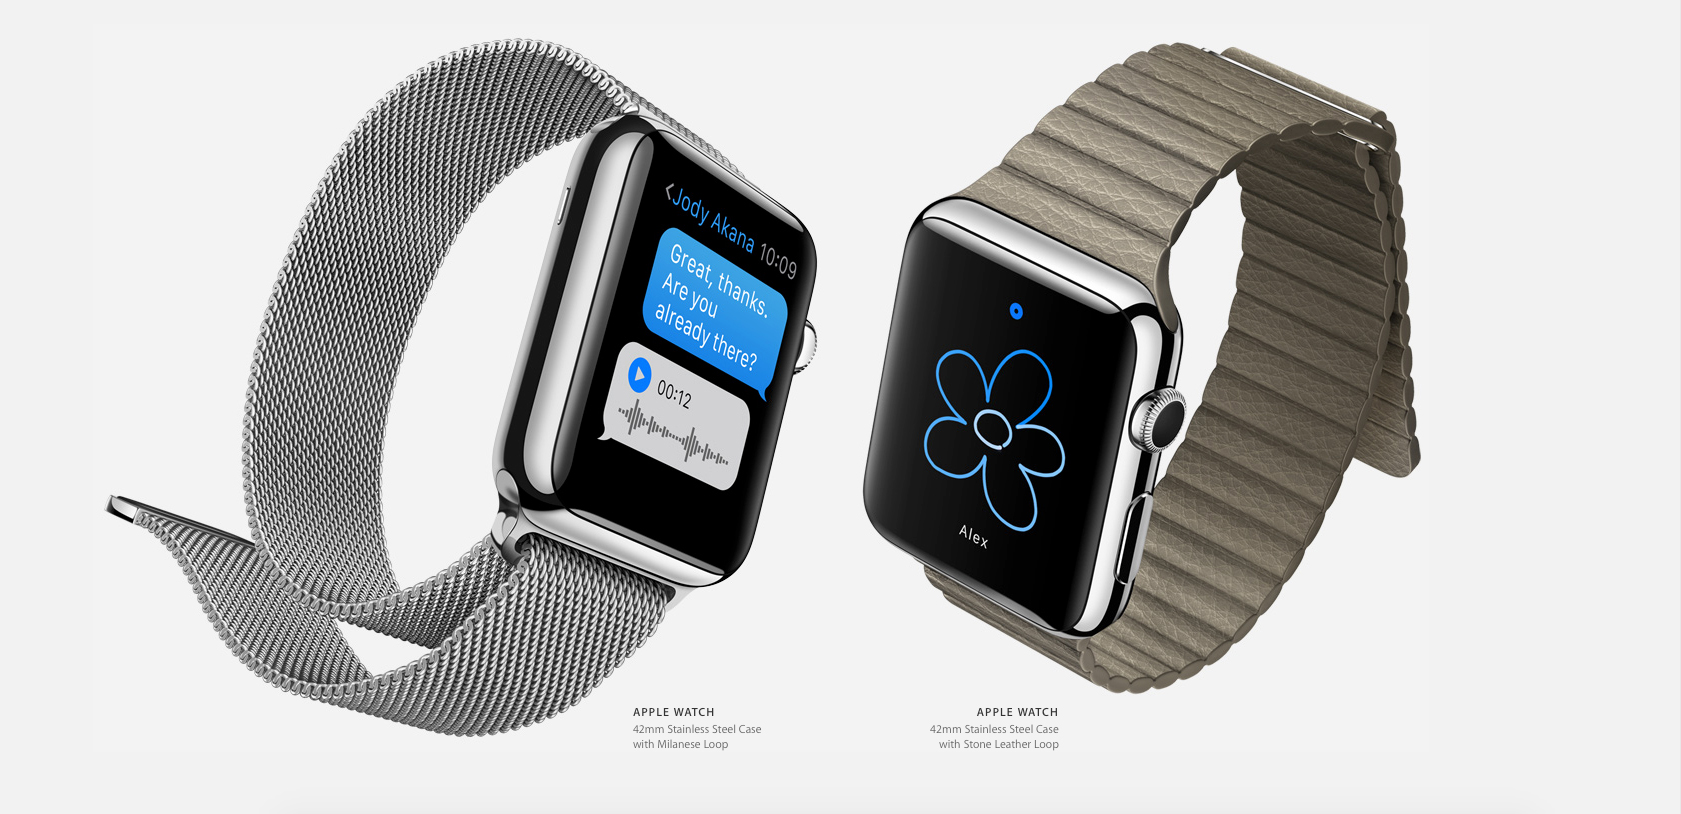 We're finally hearing more information about the Apple Watch's battery life